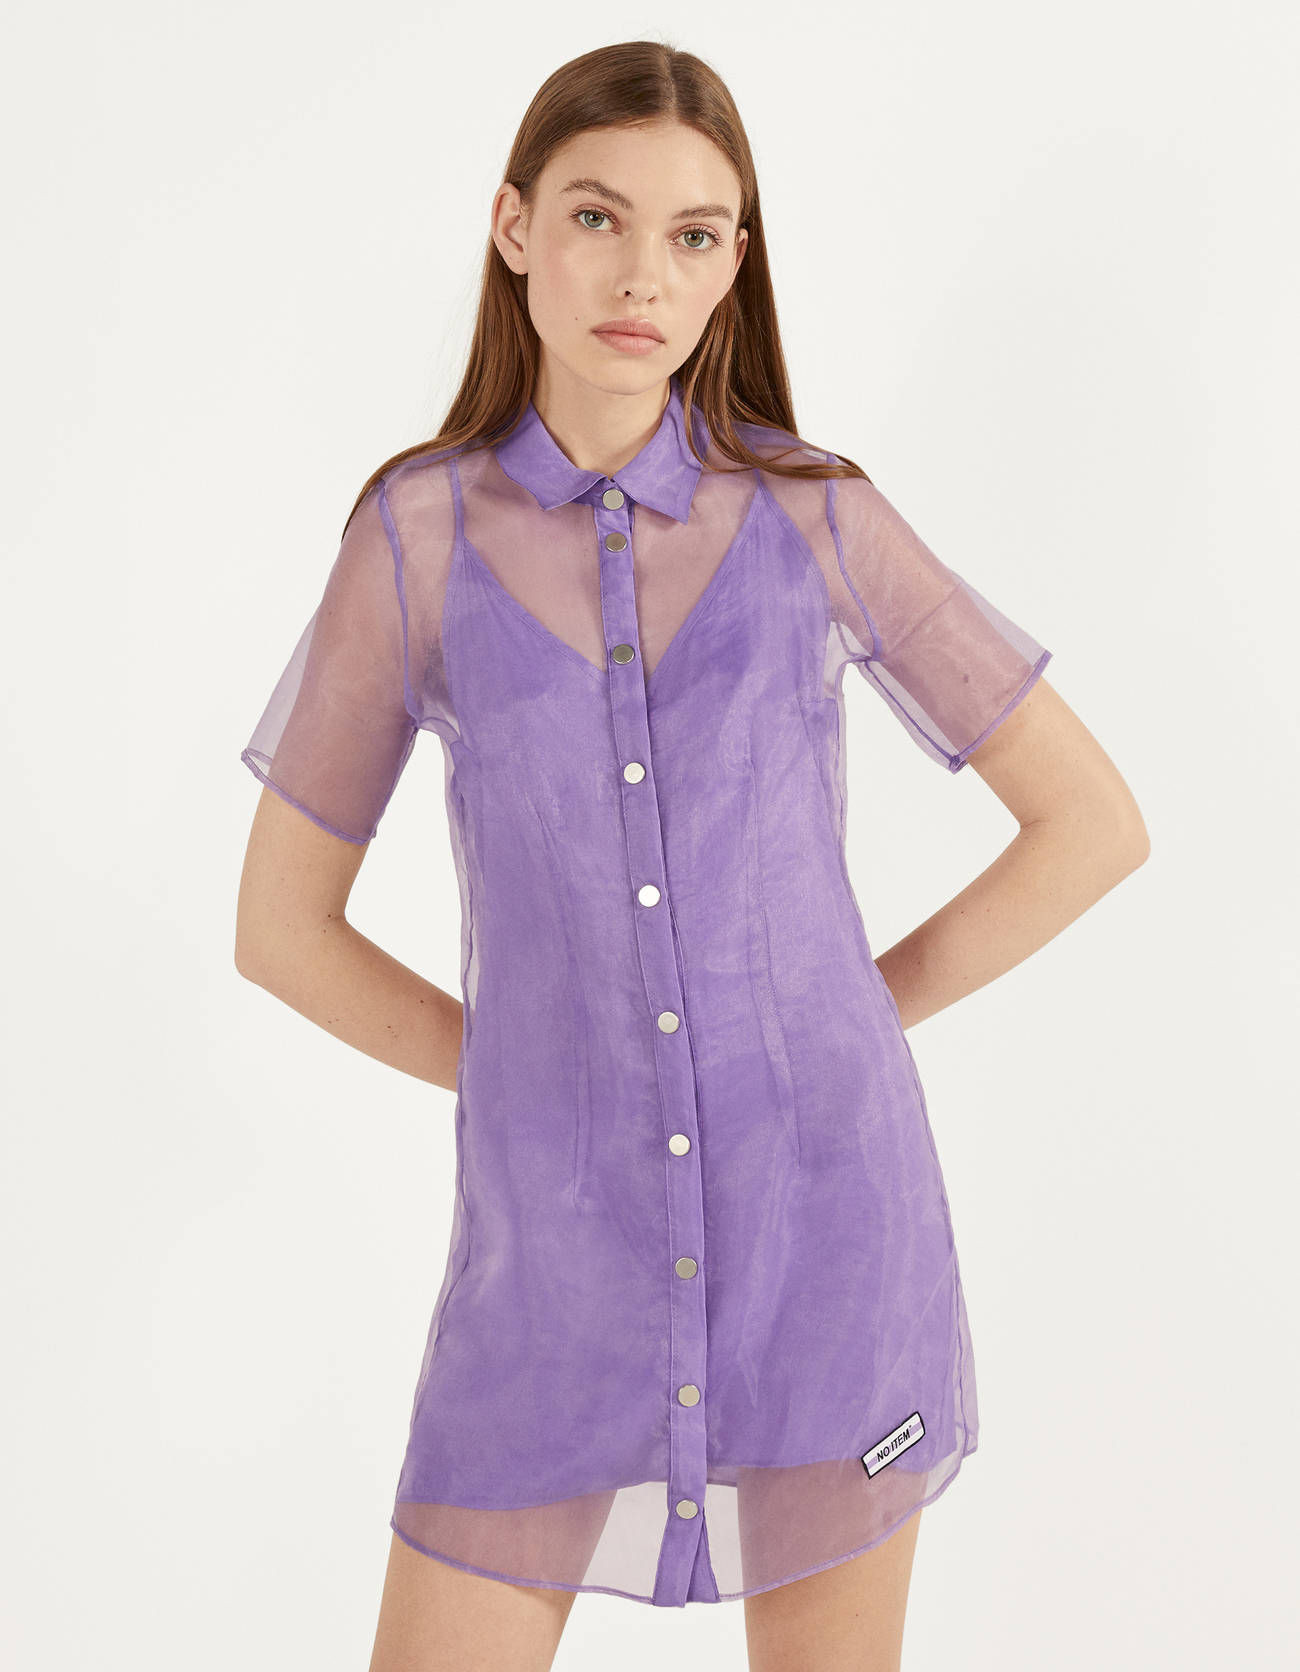 Short organza dress with lining. Shirt collar, short sleeves and front button closure.